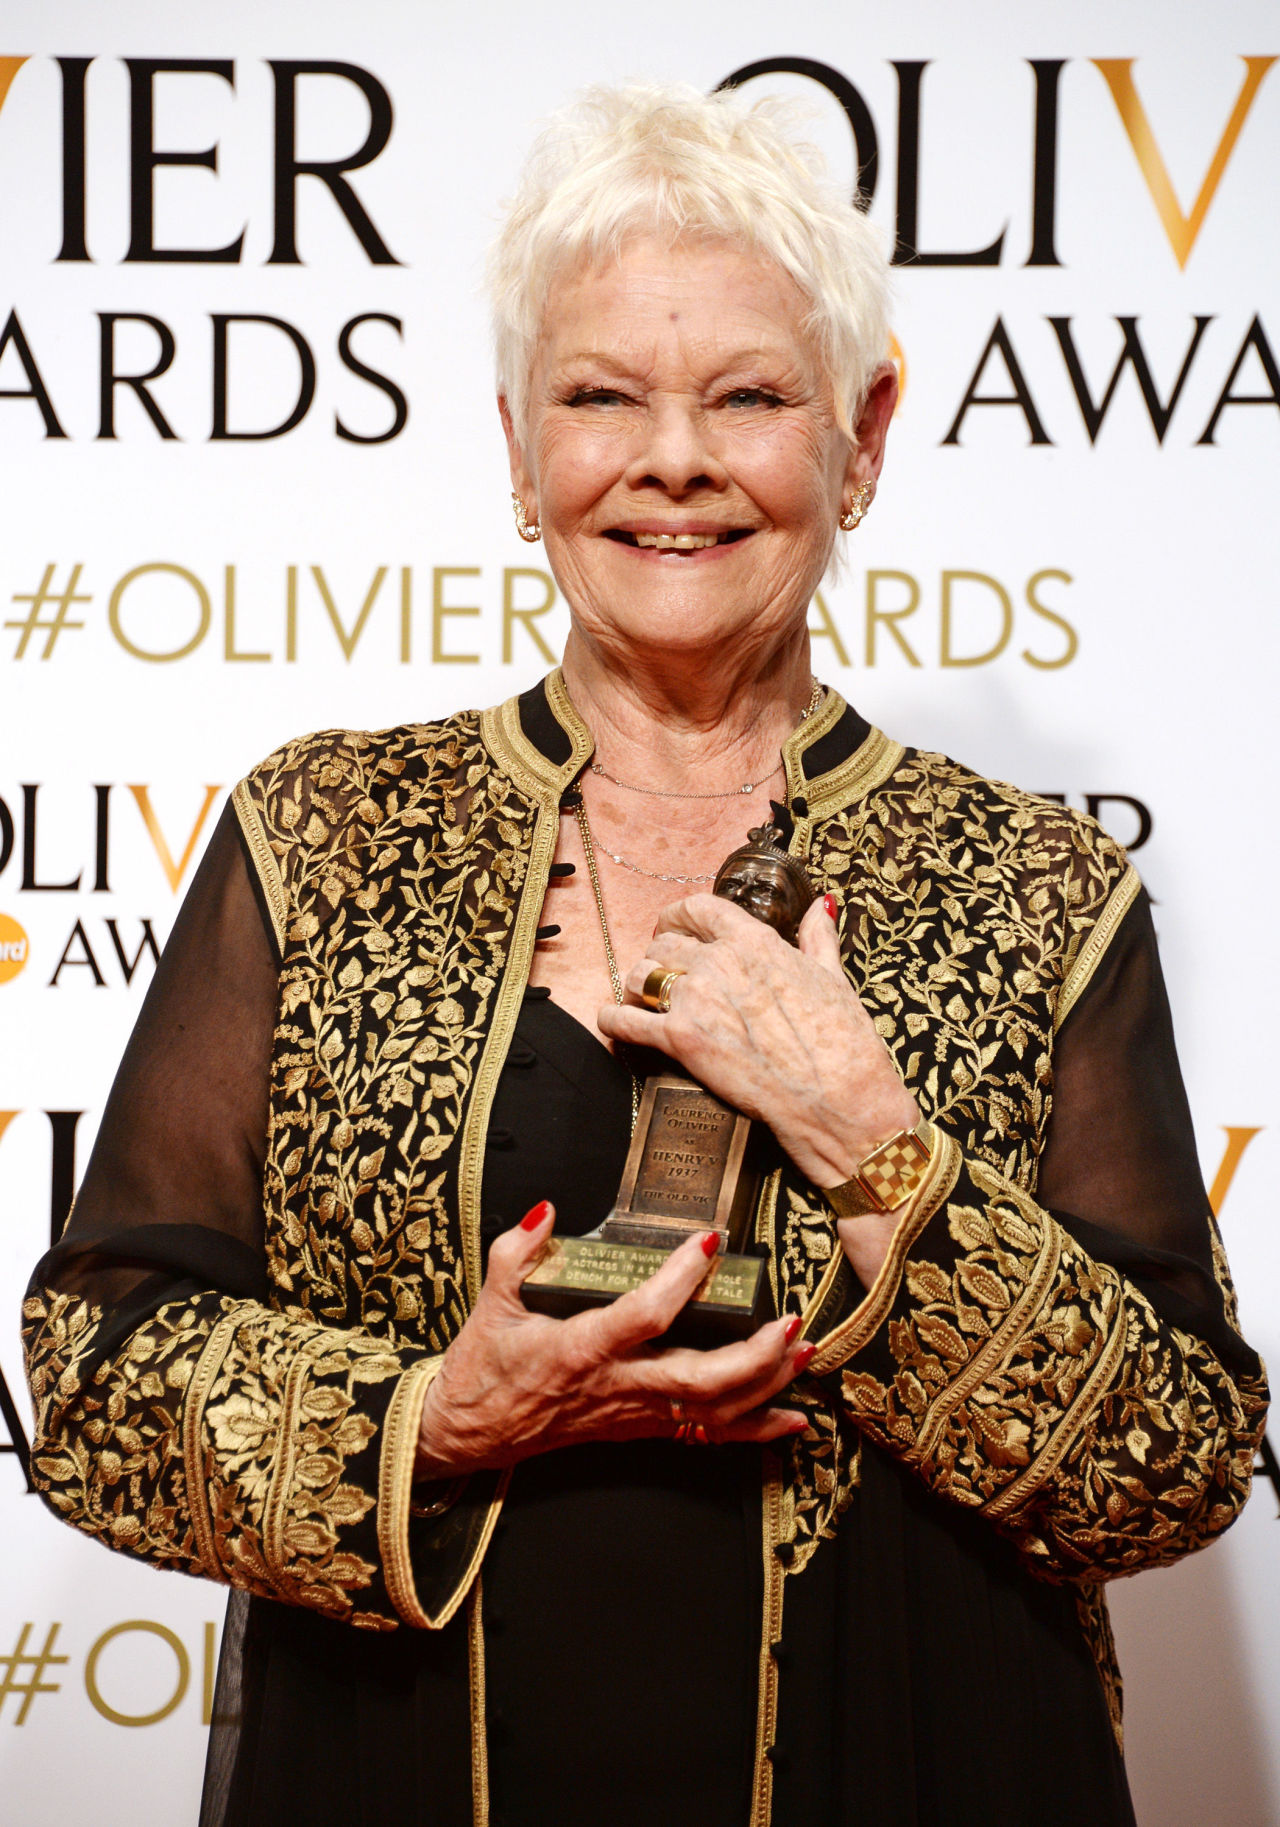 Dame Judi Dench wins 8th Olivier Award